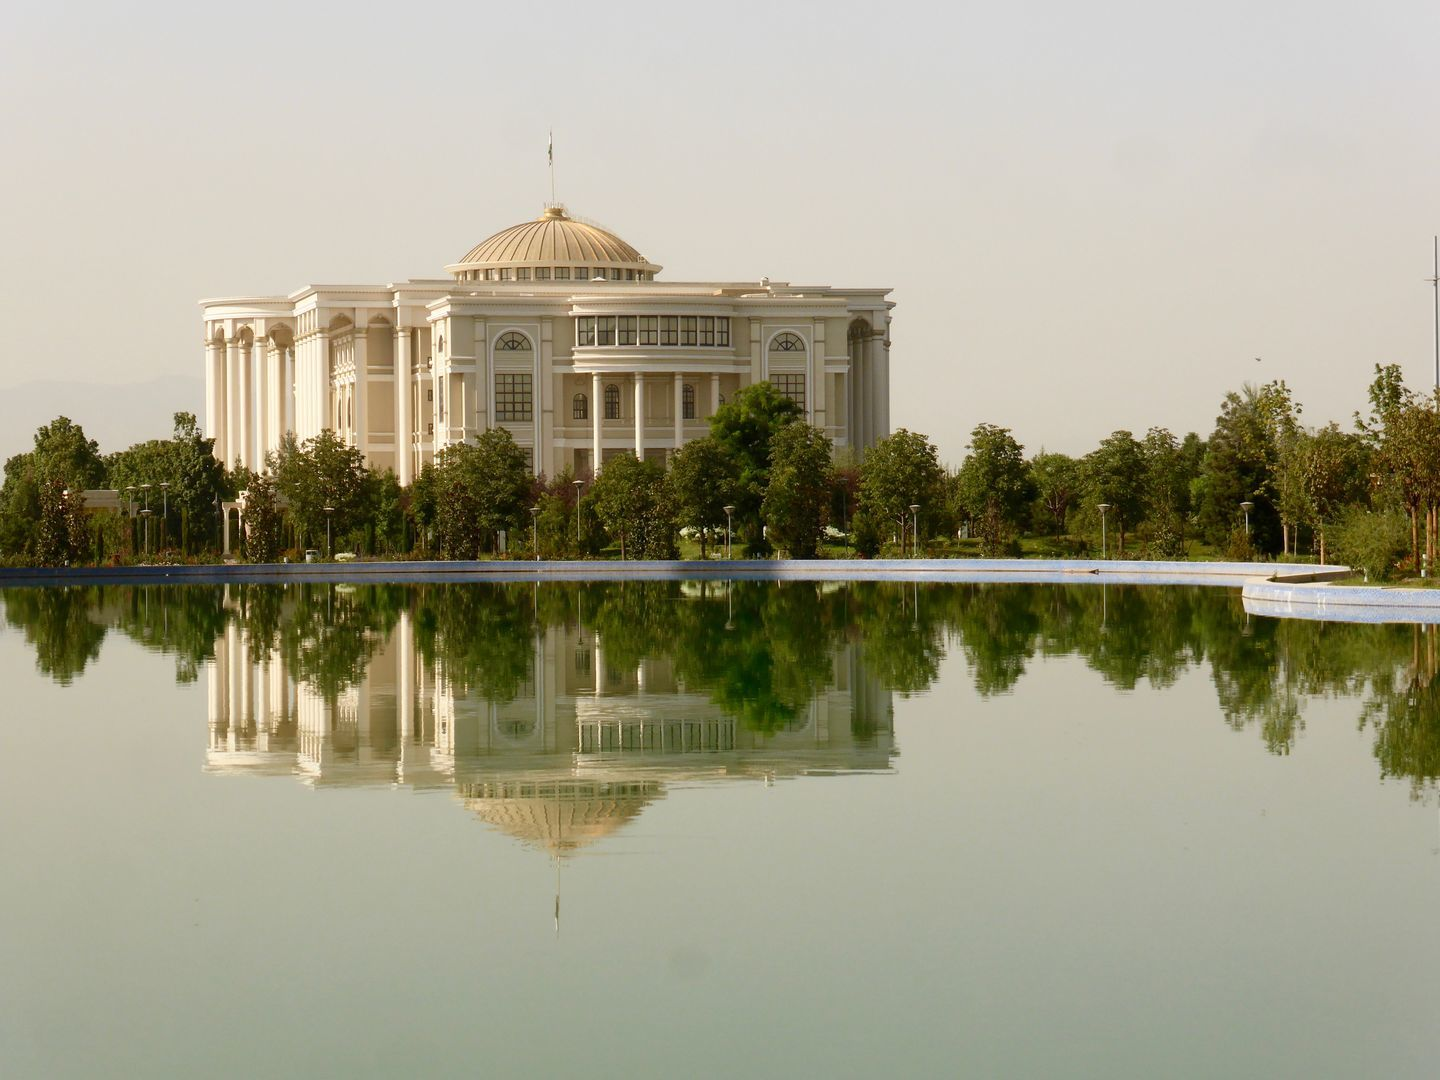 palace in front of water in Rudaki park in Dushanbe center, presidential palace-government